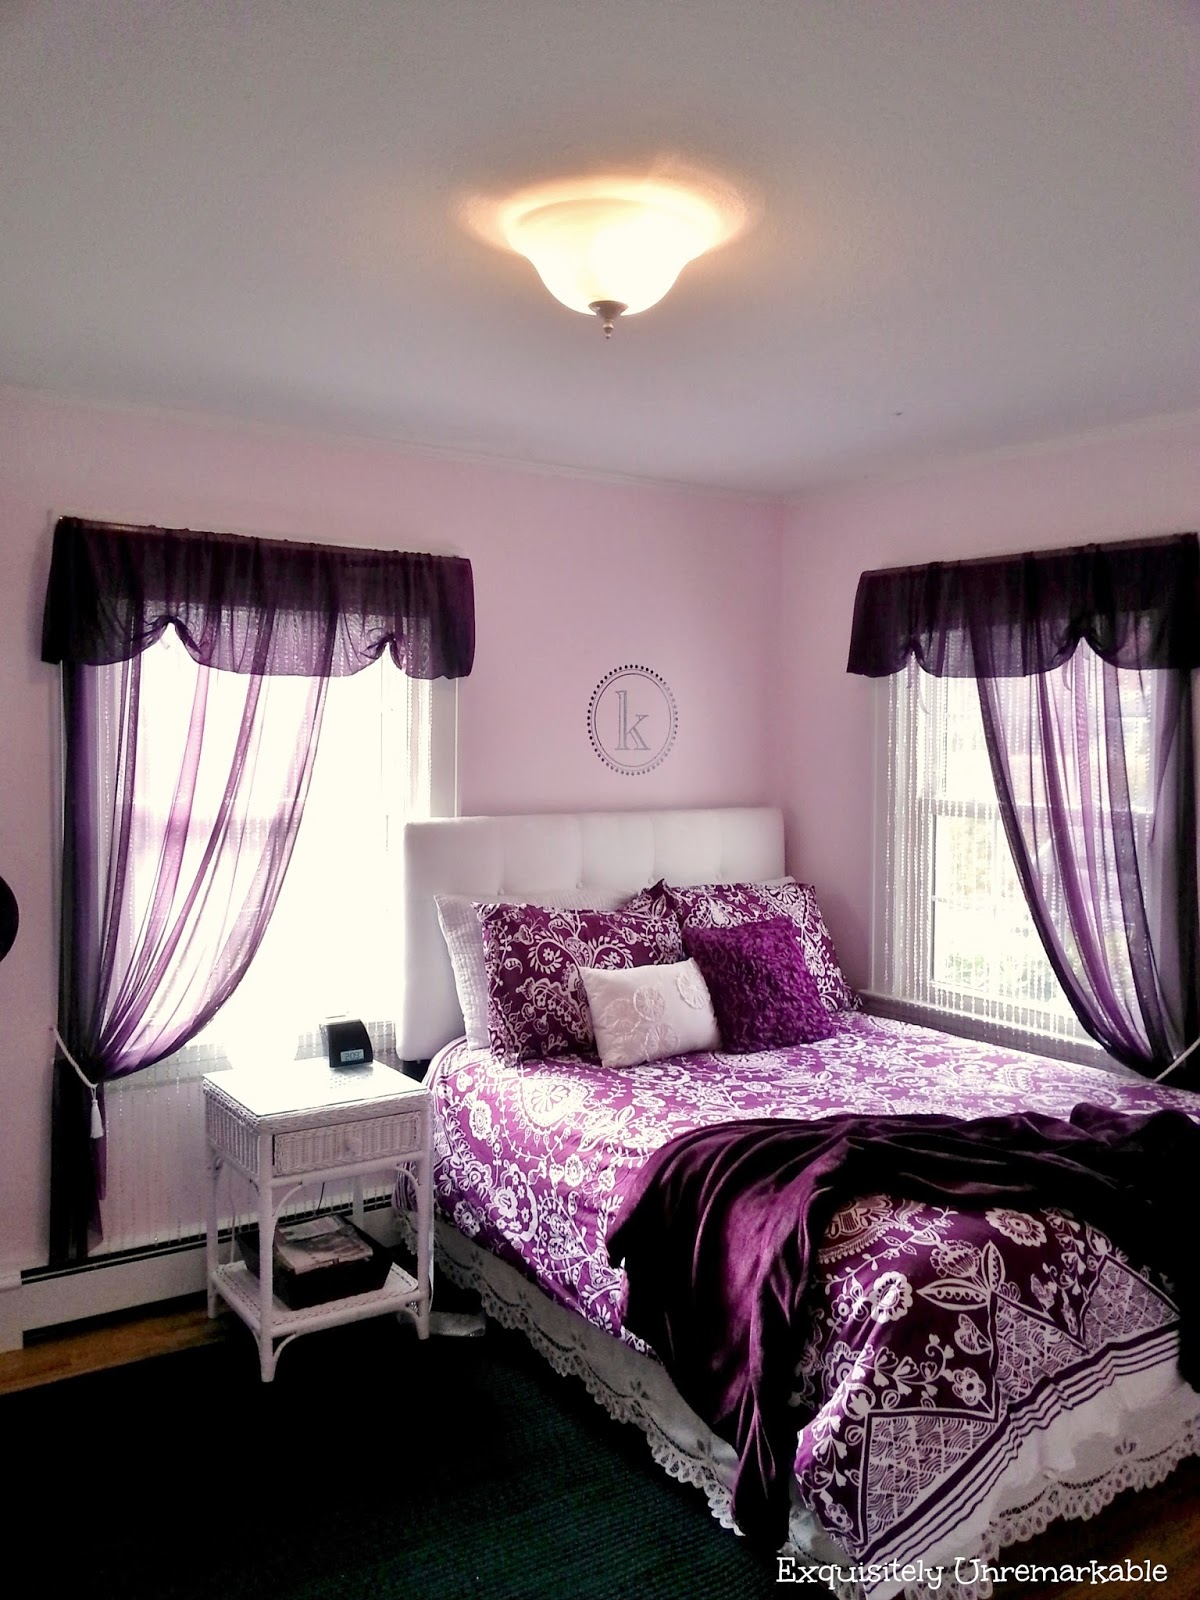 Pretty in purple teen bedroom exquisitely unremarkable for Purple bedroom design ideas